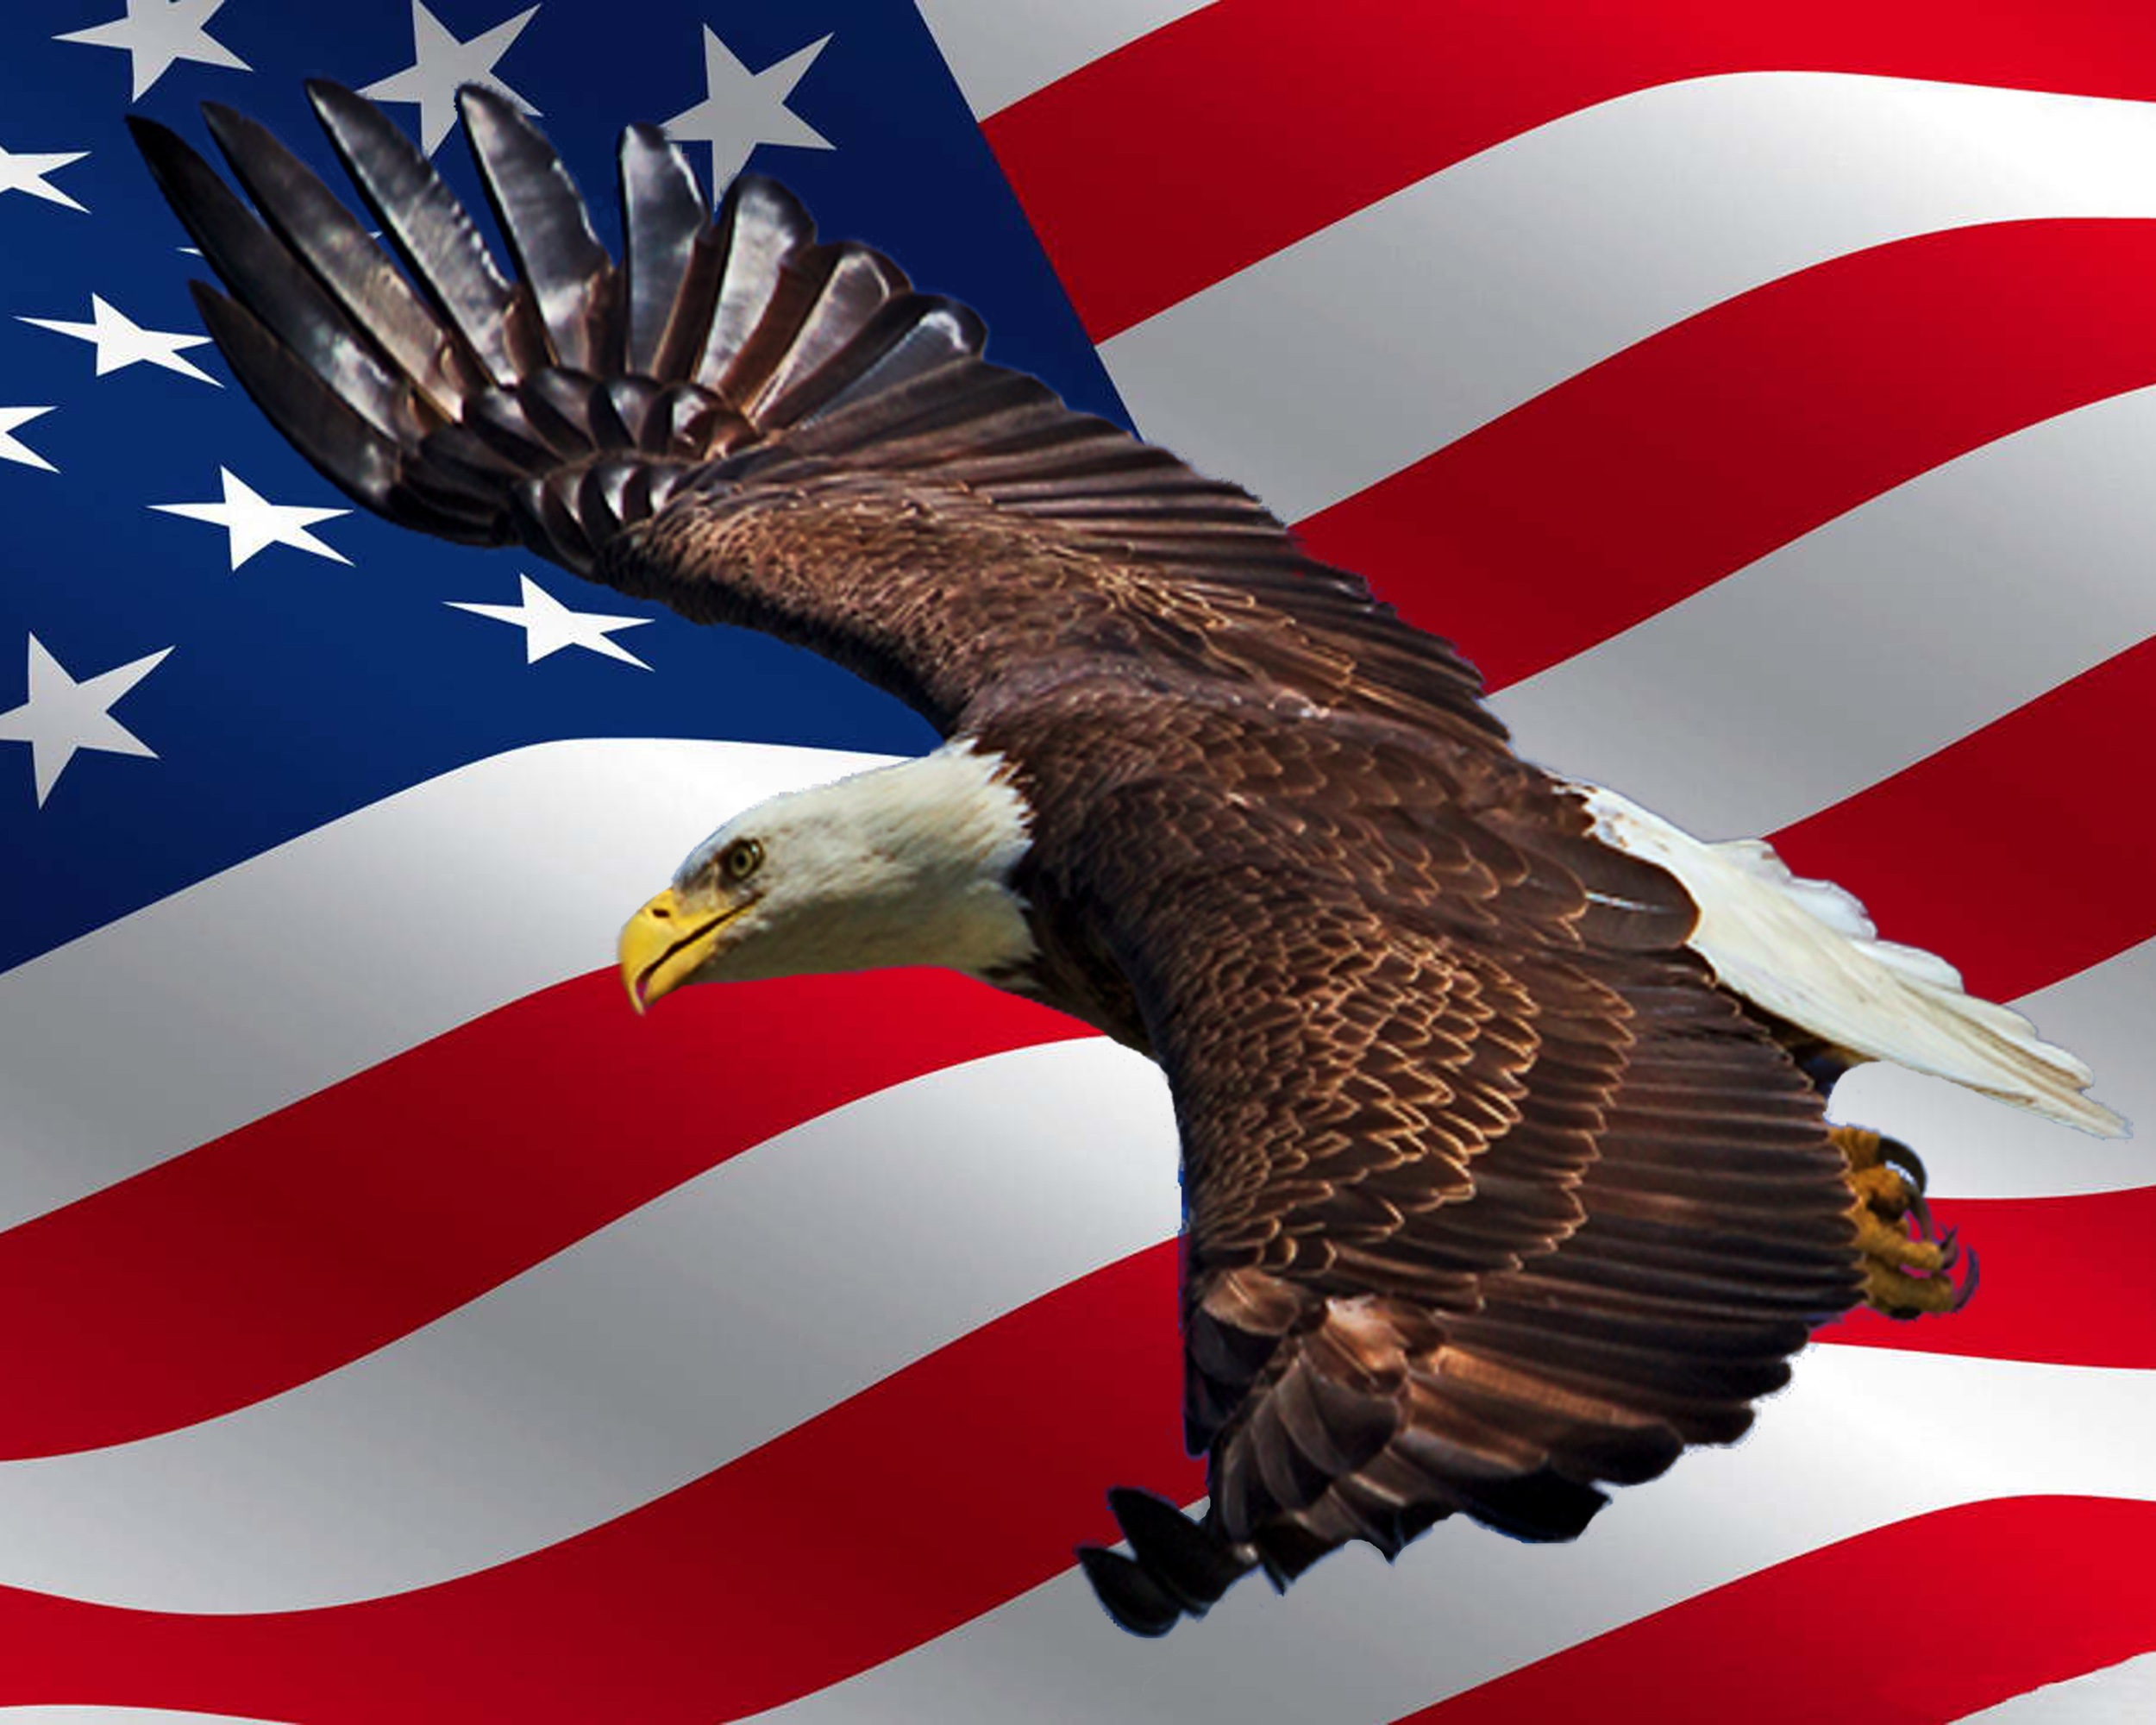 Let's pray for the true Spirit of America of our Founding Fathers returns to our land and families before it is too late..